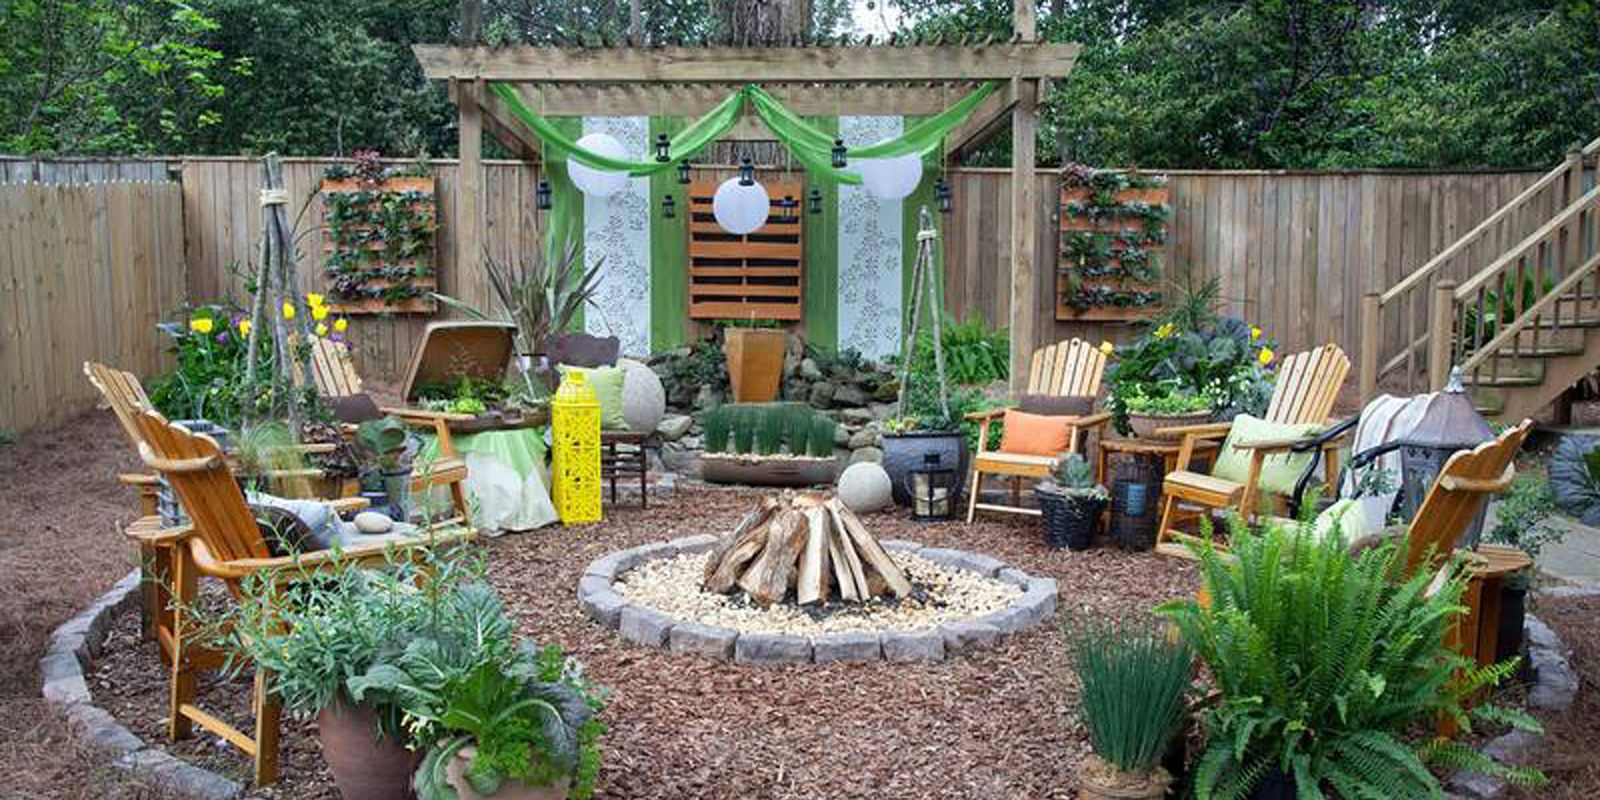 Backyard oasis beautiful backyard ideas for Creating a small garden